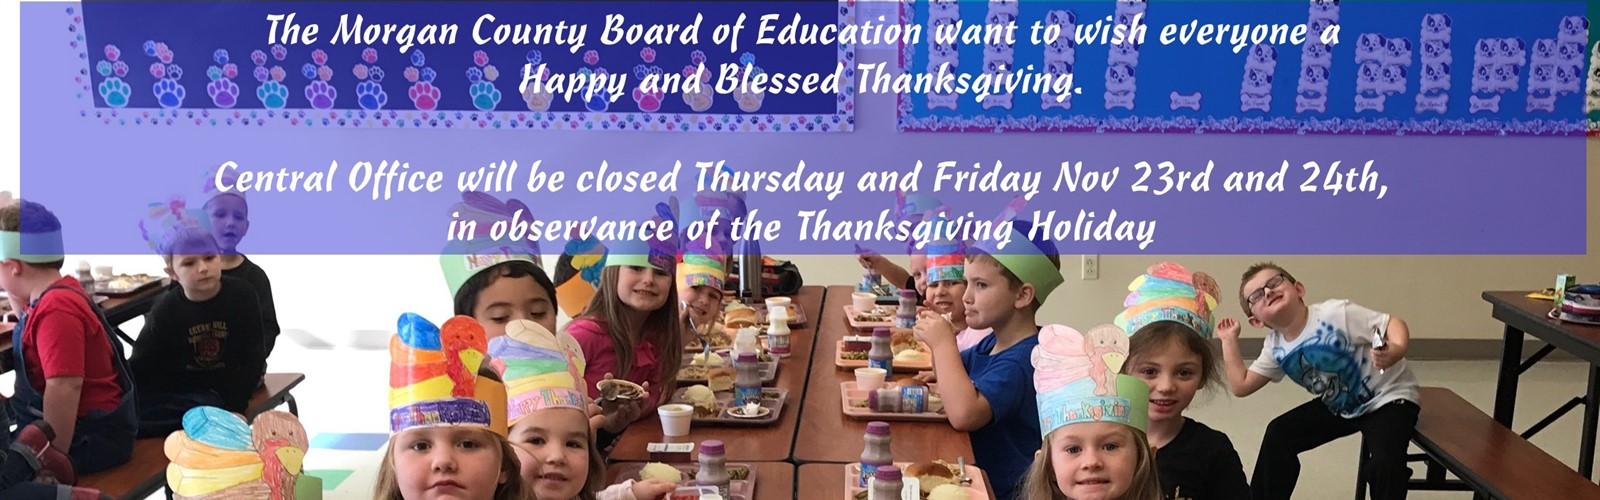 Morgan County Central Office will be closed Nov 23 & 24 in observance of Thanksgiving